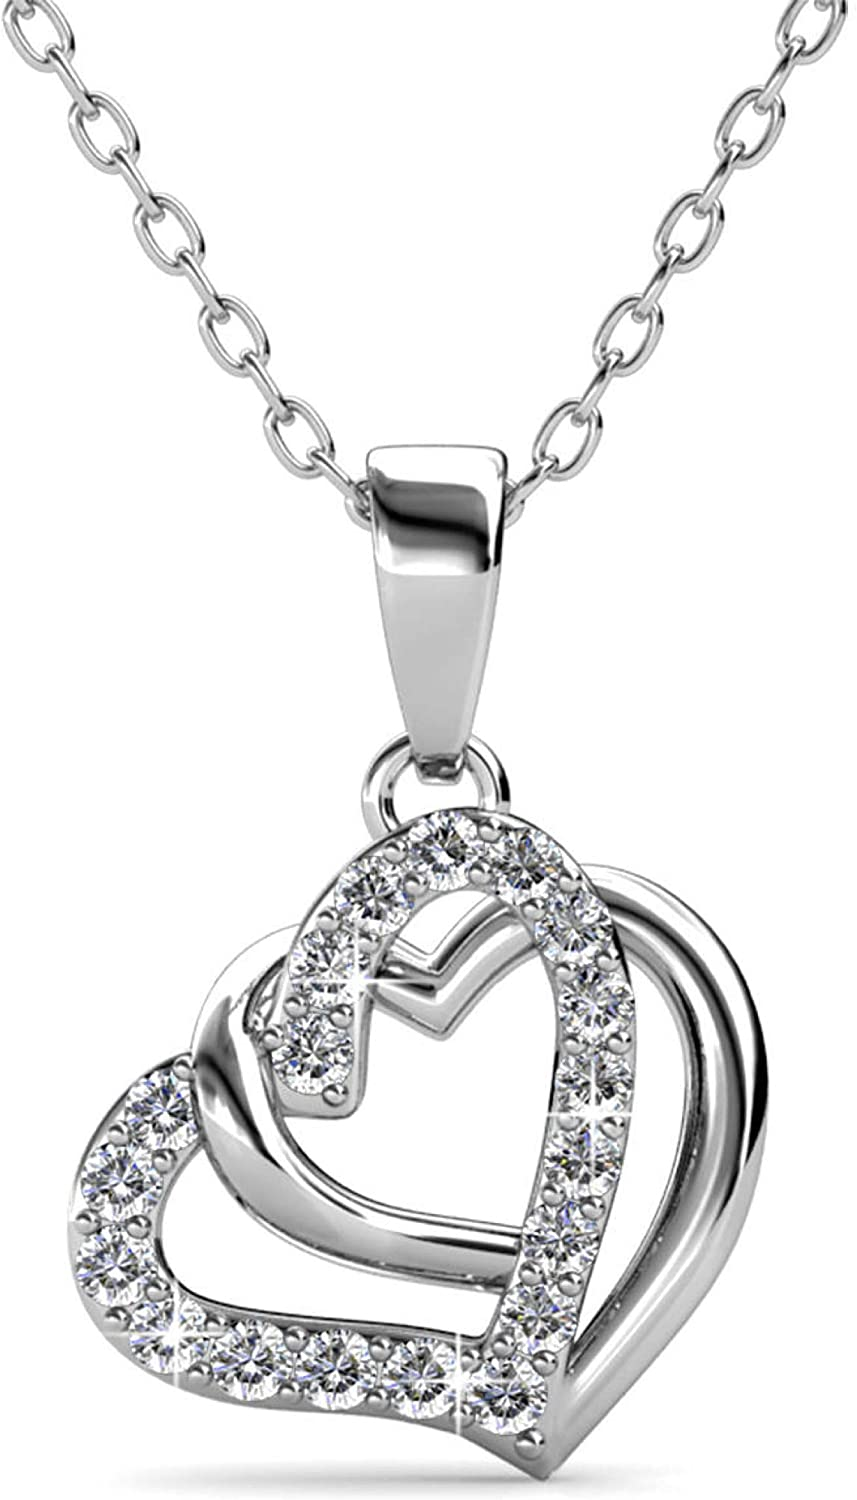 Love Heart 18K White Gold Plated Eleg Lovely Limited price sale Pendant Necklace New Shipping Free